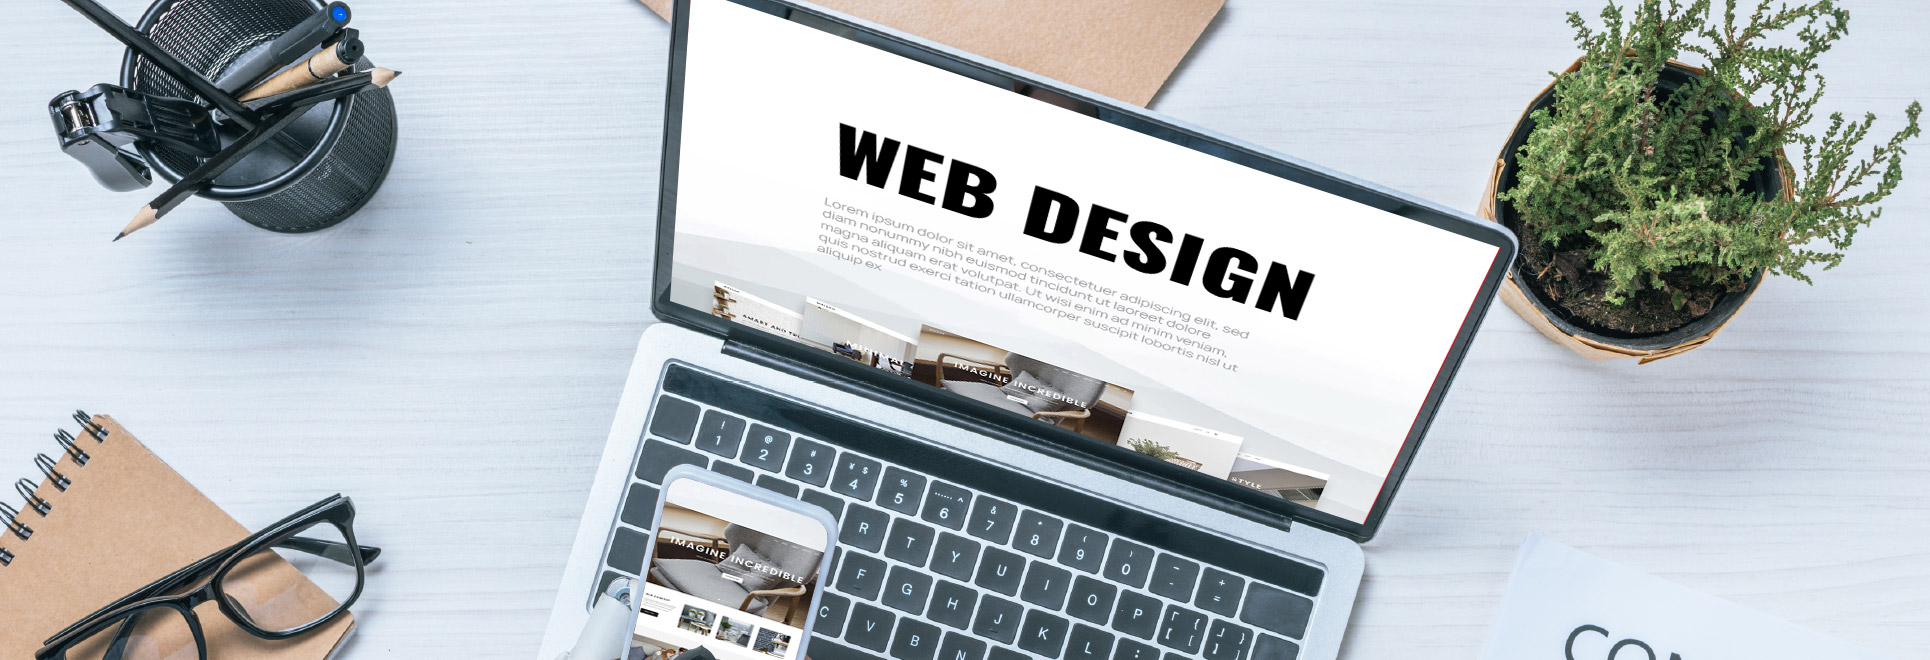 Designing Websites for Small Businesses [A Start-from-Scratch Guide]